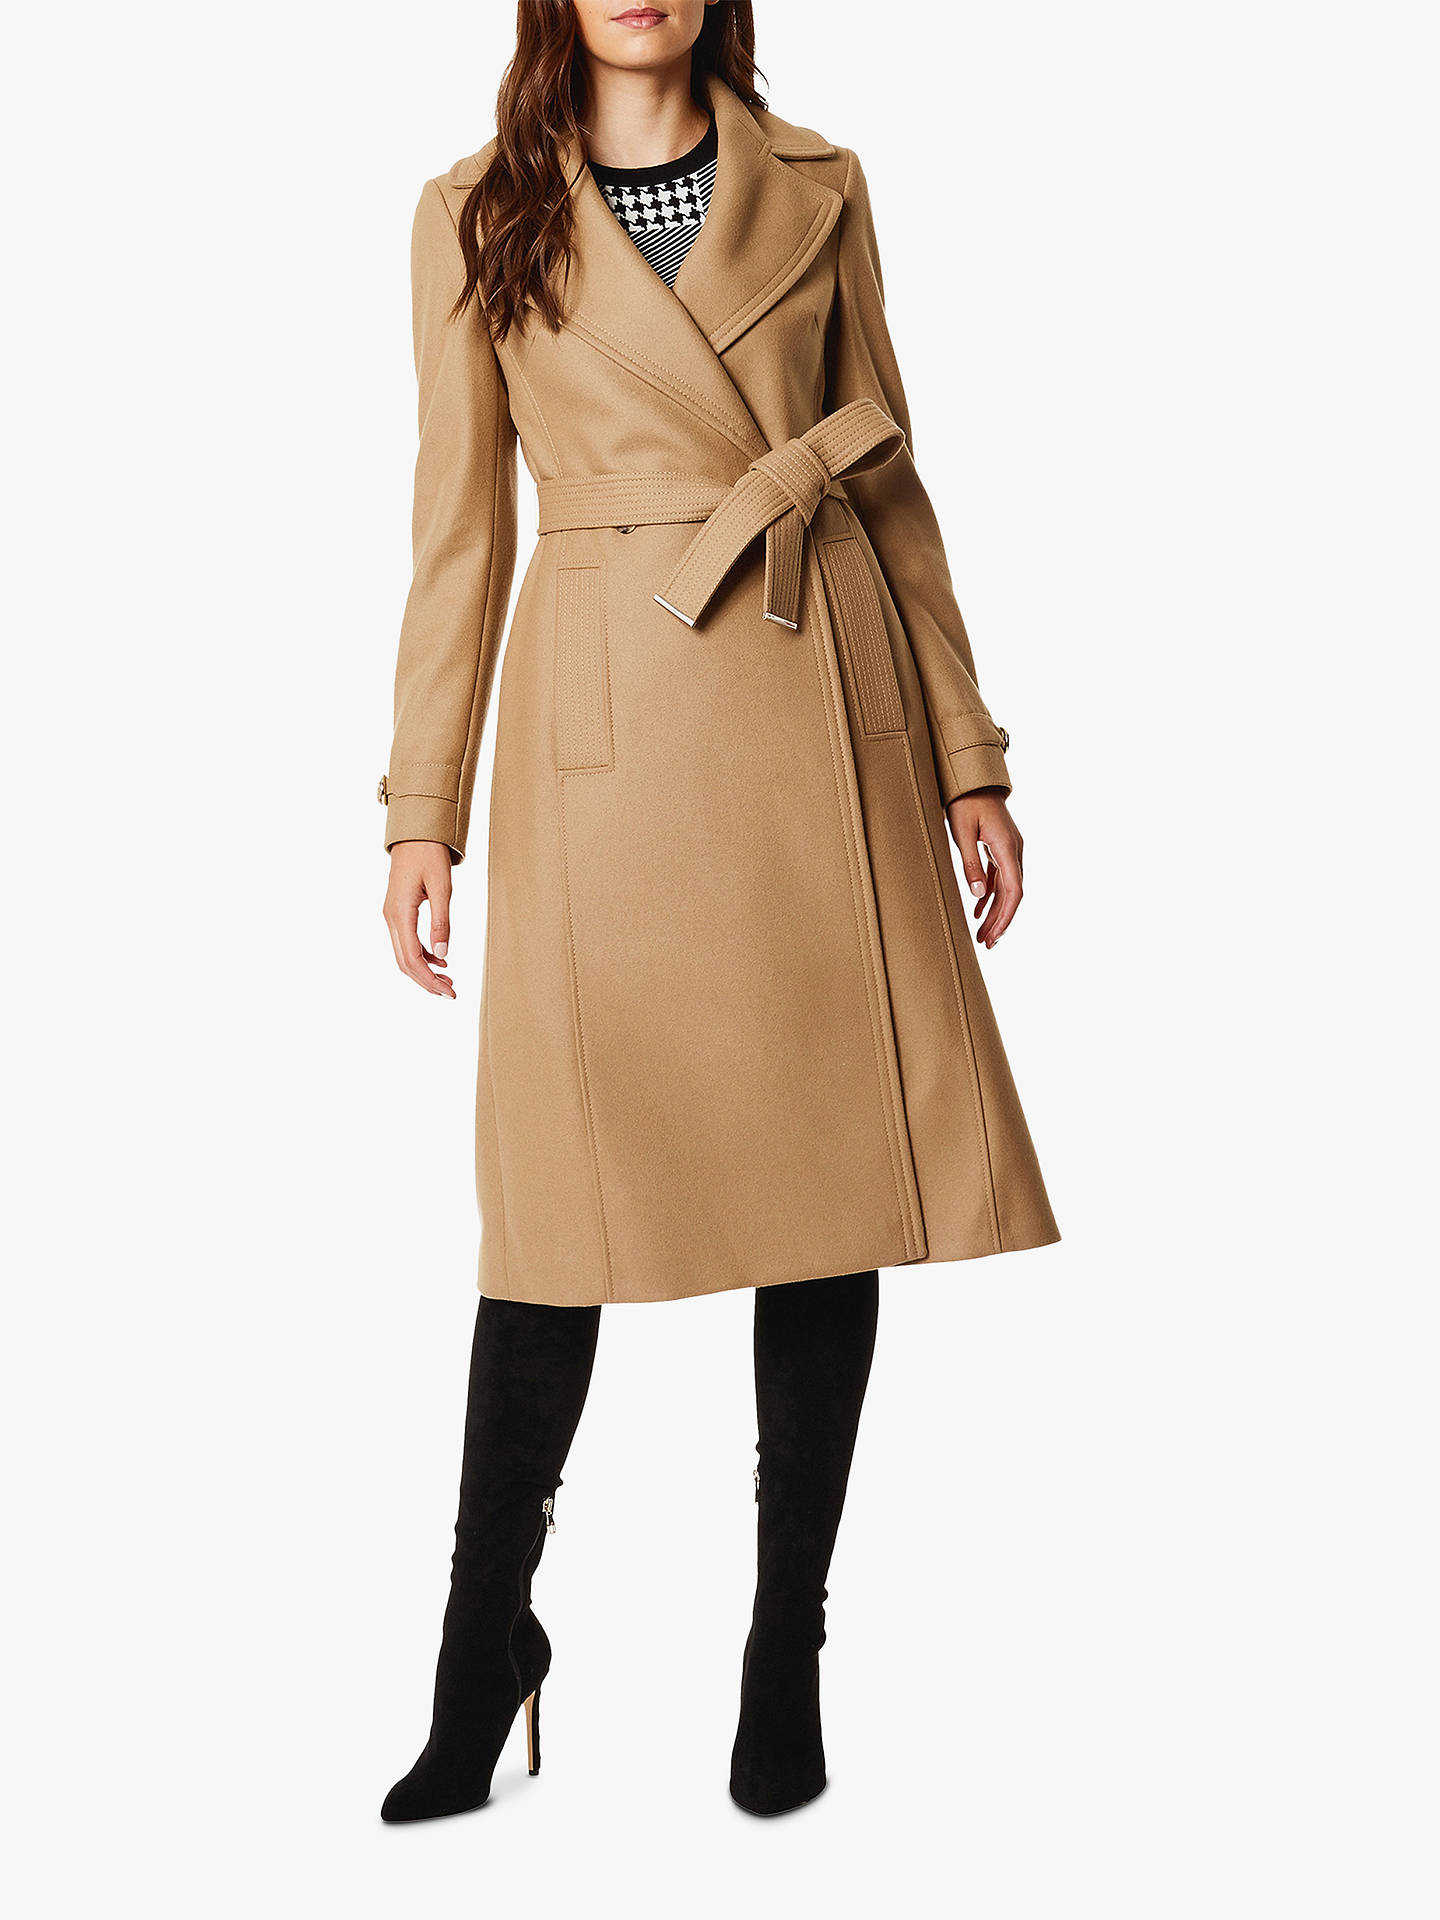 quality clients first high quality Karen Millen Belted Trench Coat, Camel at John Lewis & Partners